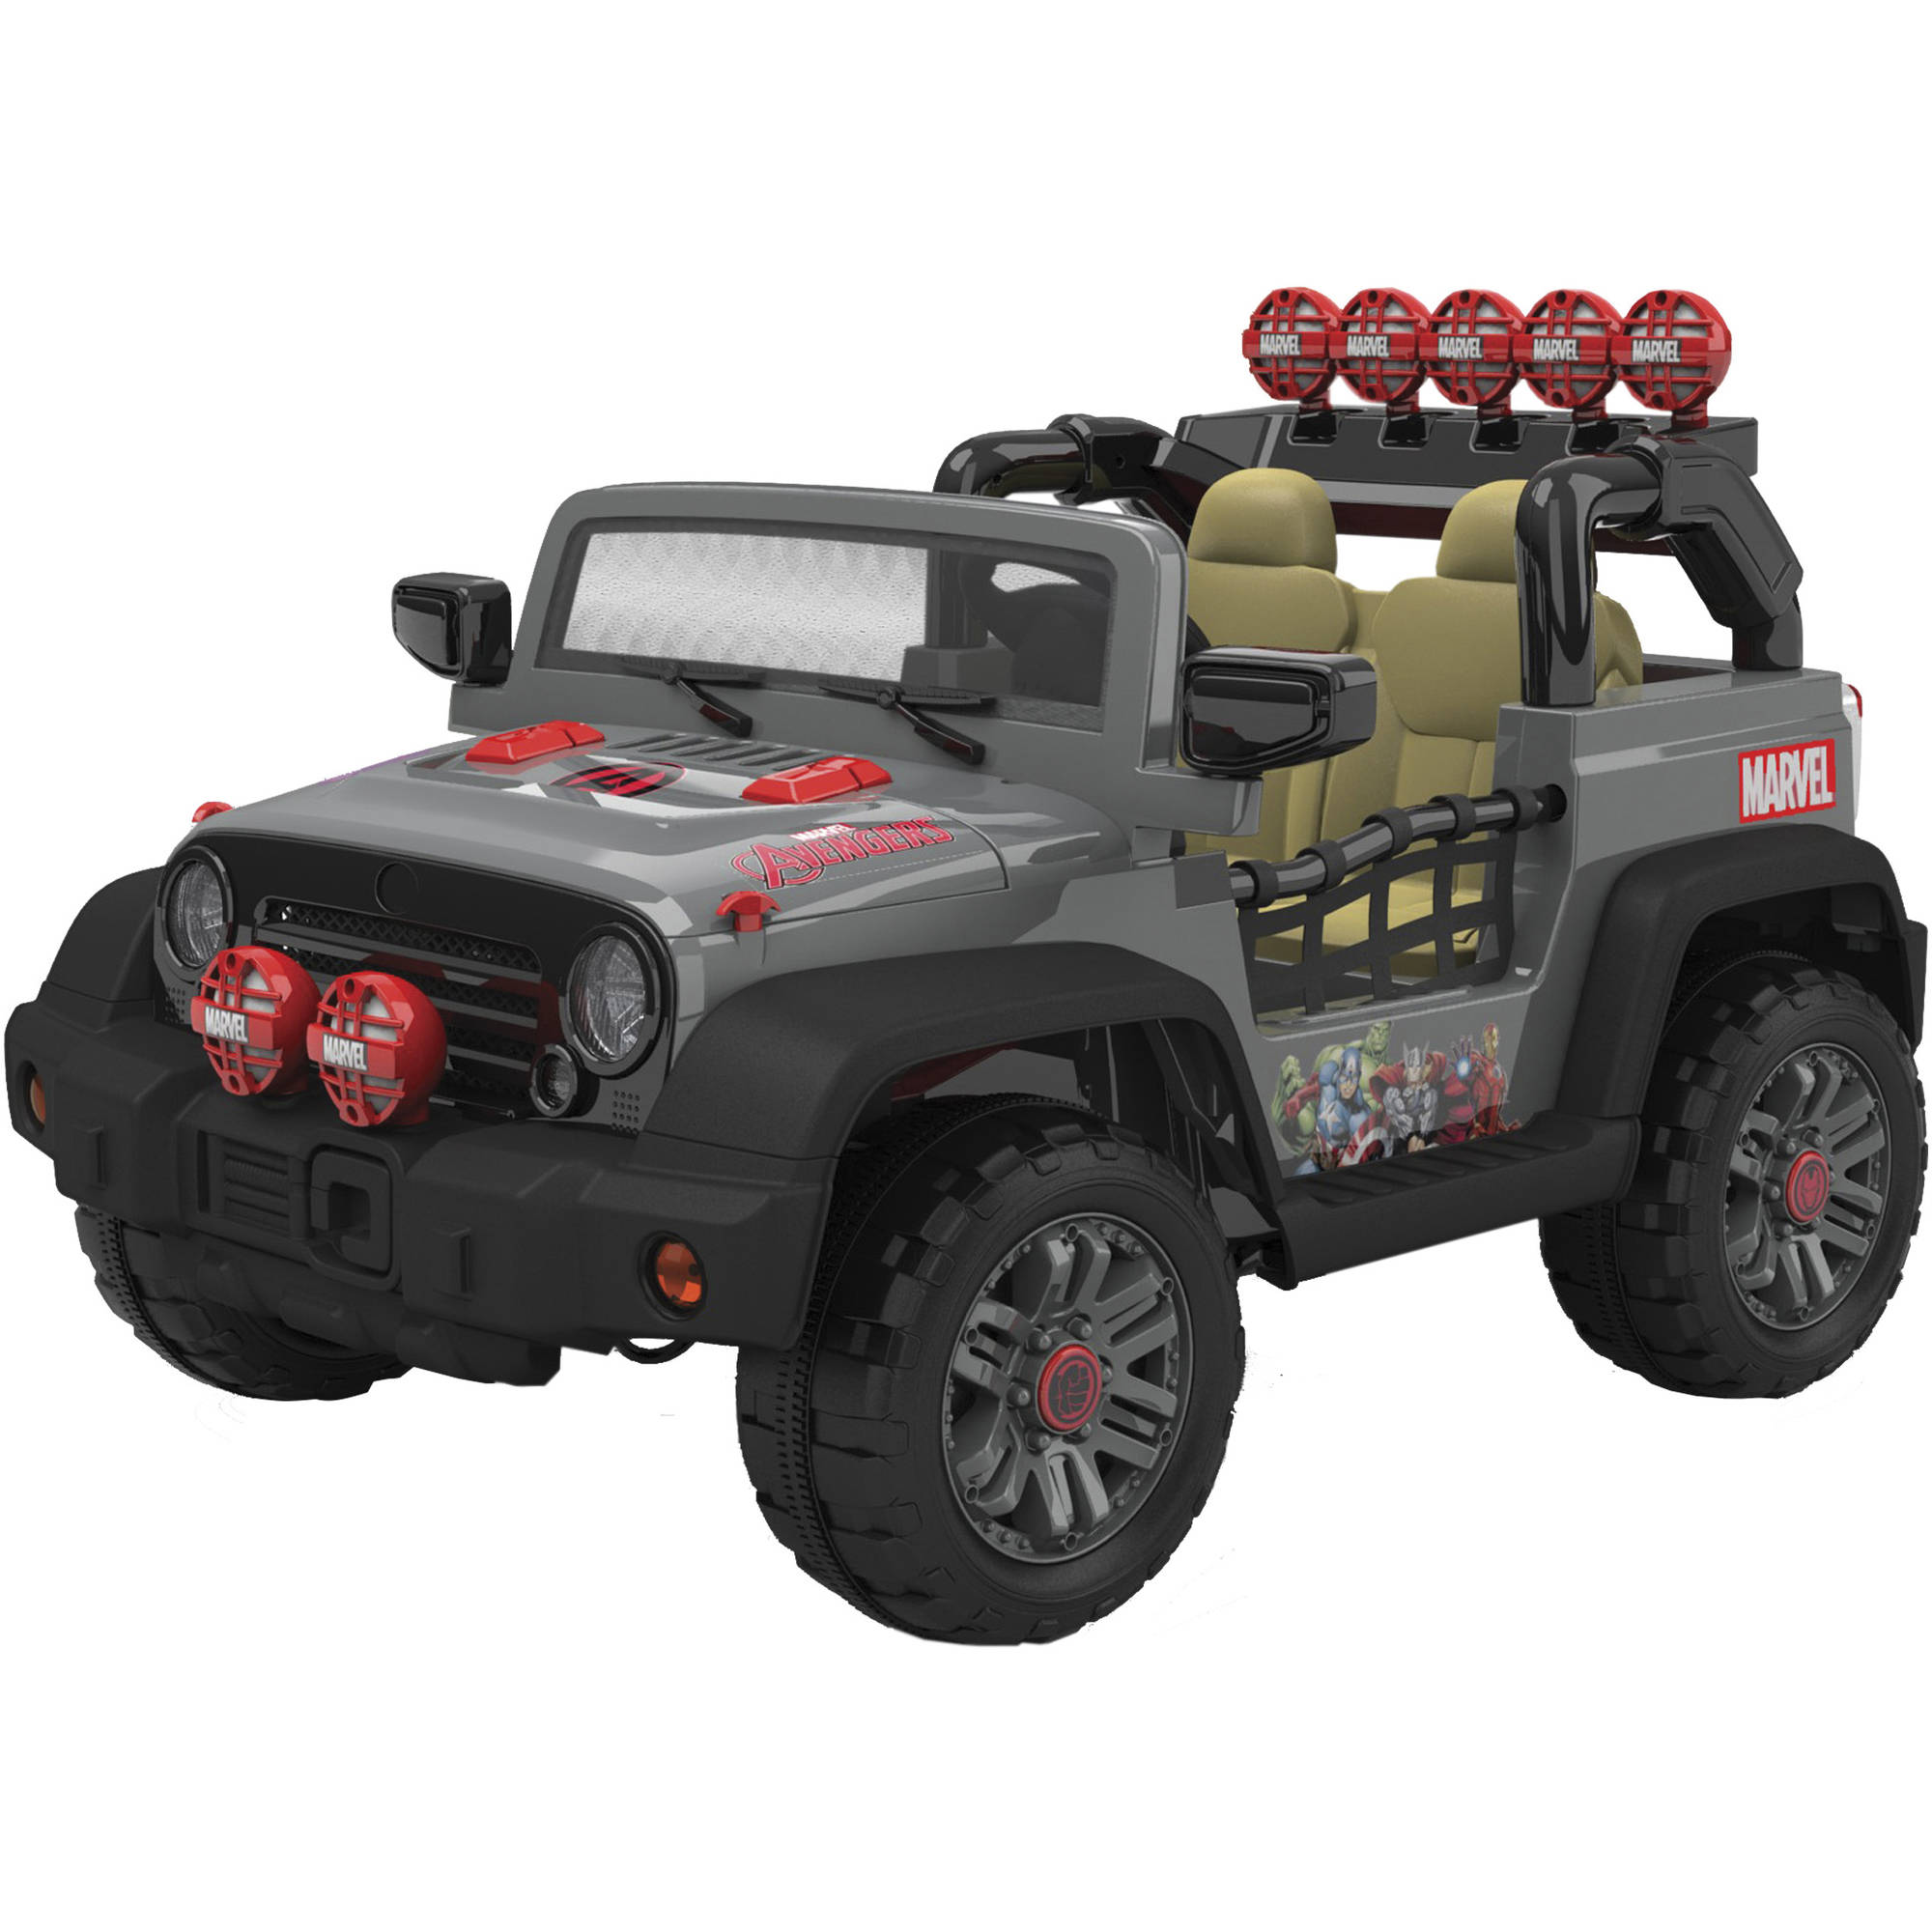 Avengers 12-Volt 4x4 Electric Battery-Powered Ride-On